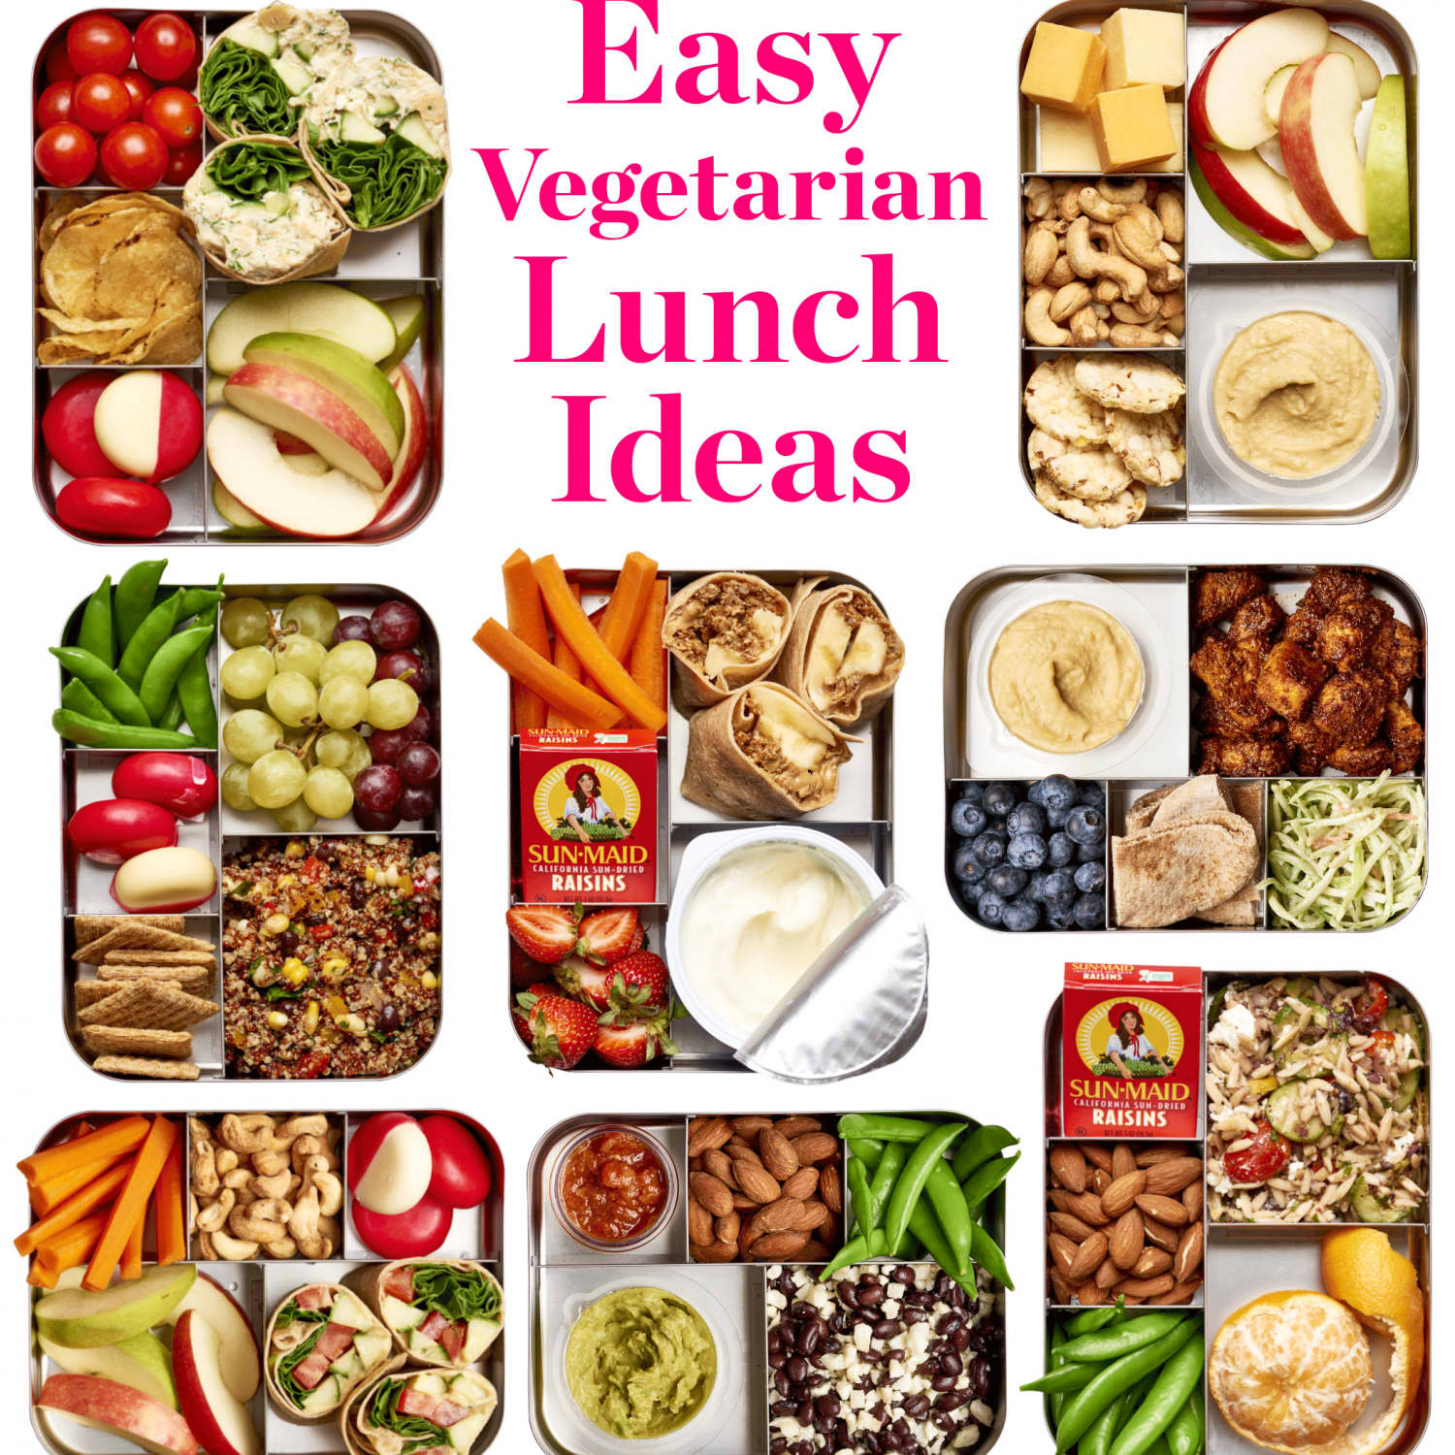 Easy Vegetarian Lunch Ideas | Kitchn